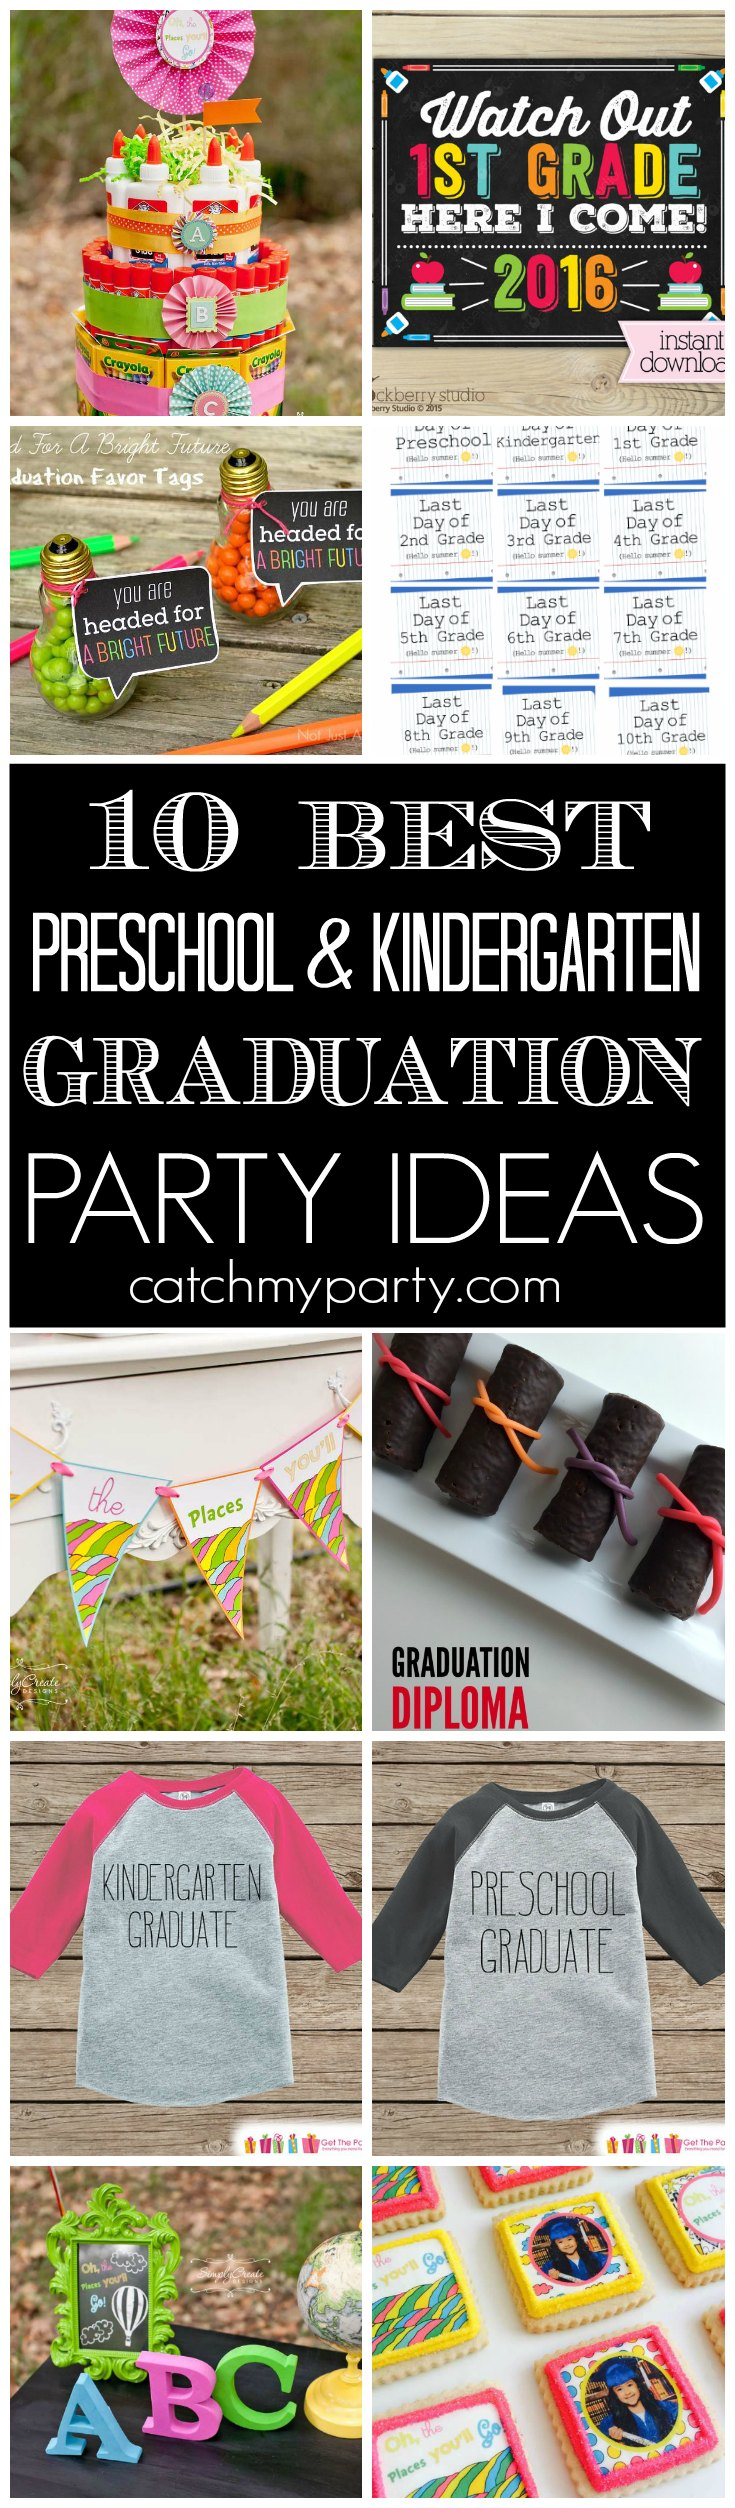 10 Best Preschool & Kindergarten Graduation Party Ideas ...